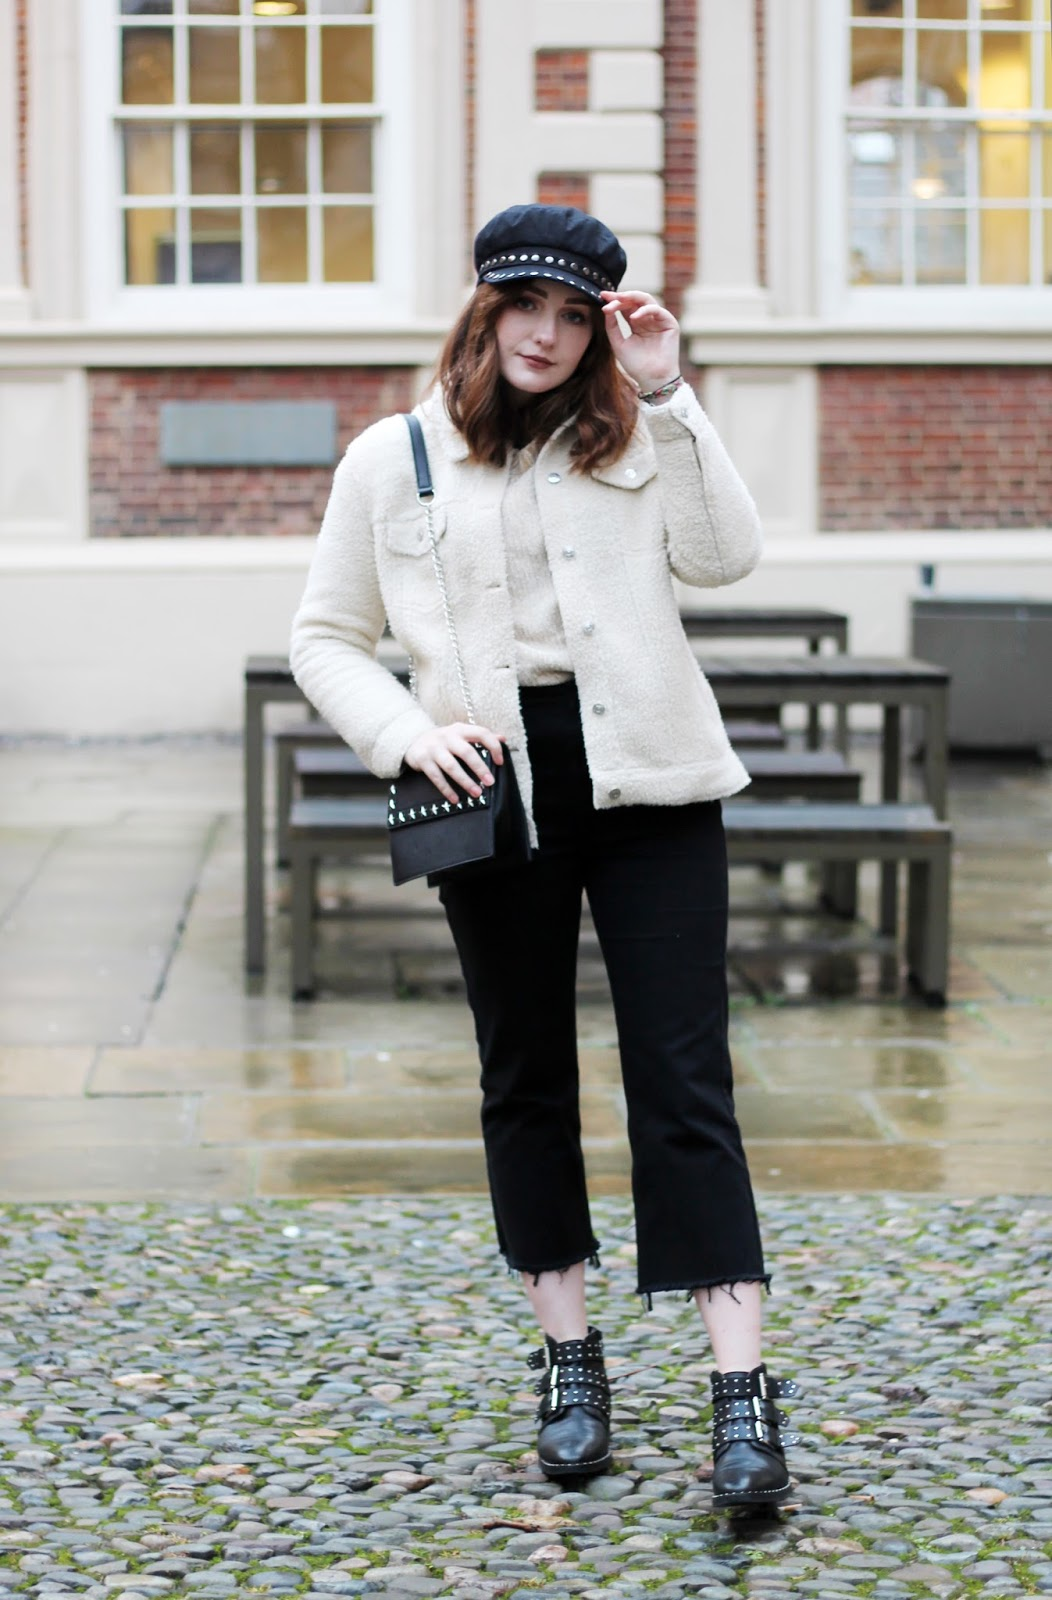 cream and black outfit inspired by 70s fashion on Liverpool based blogger allie davies